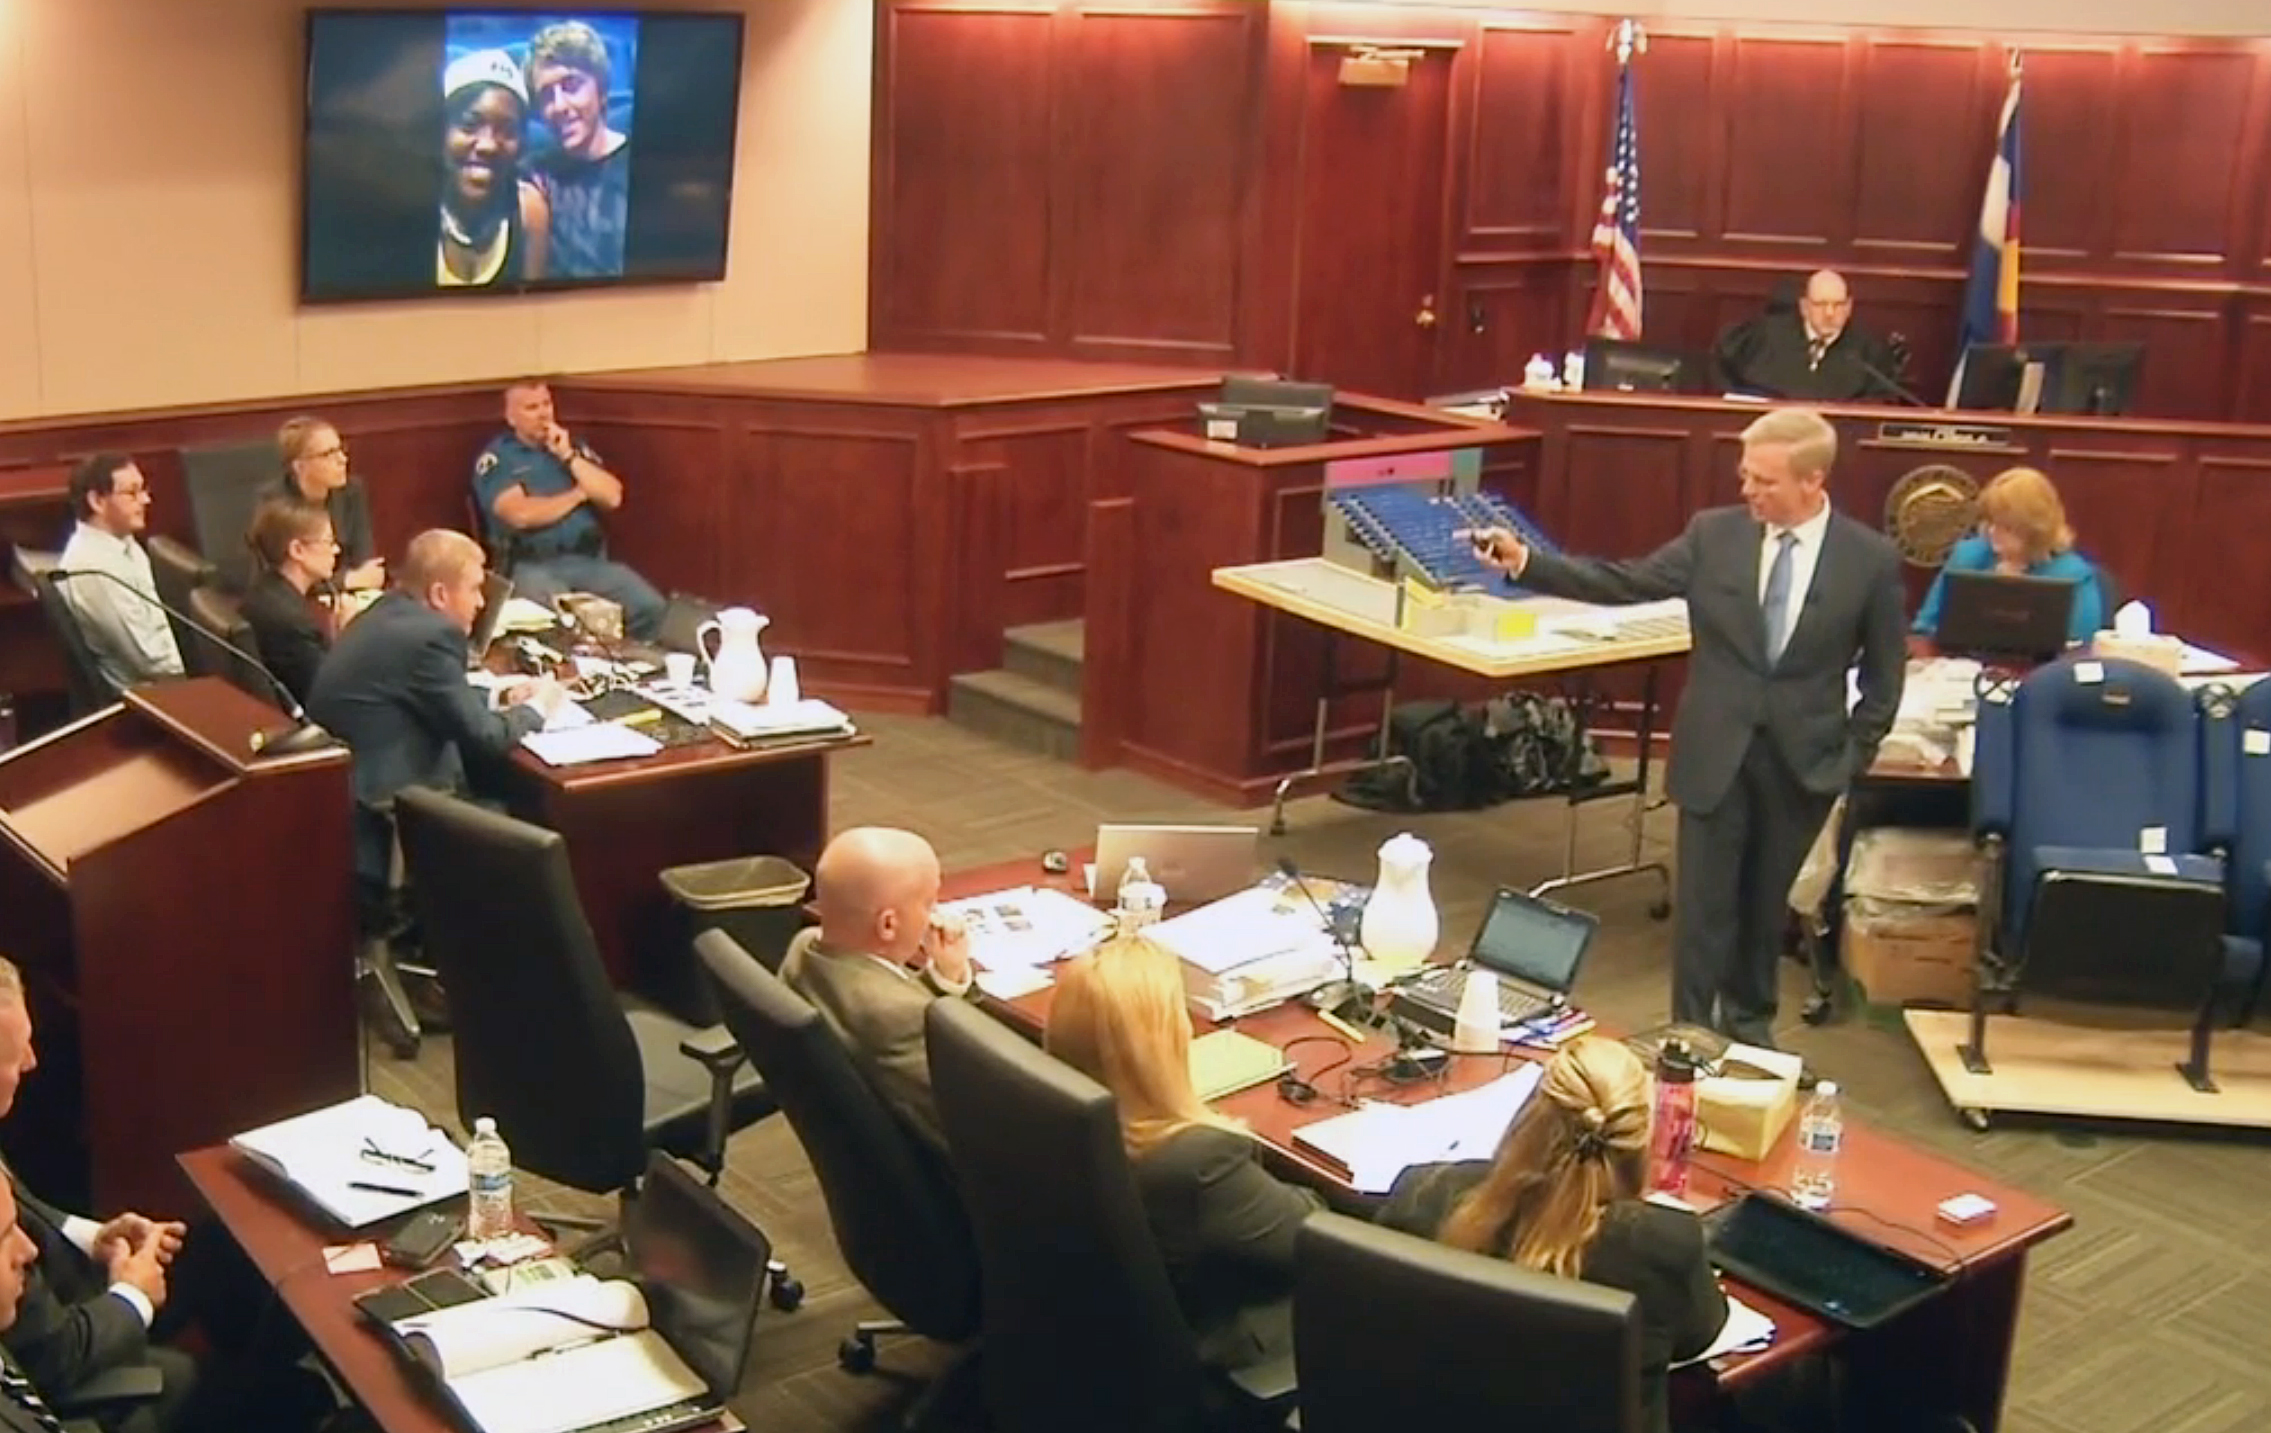 Photos: Brauchler Closing Arguments Aurora Theater Shooting Trial